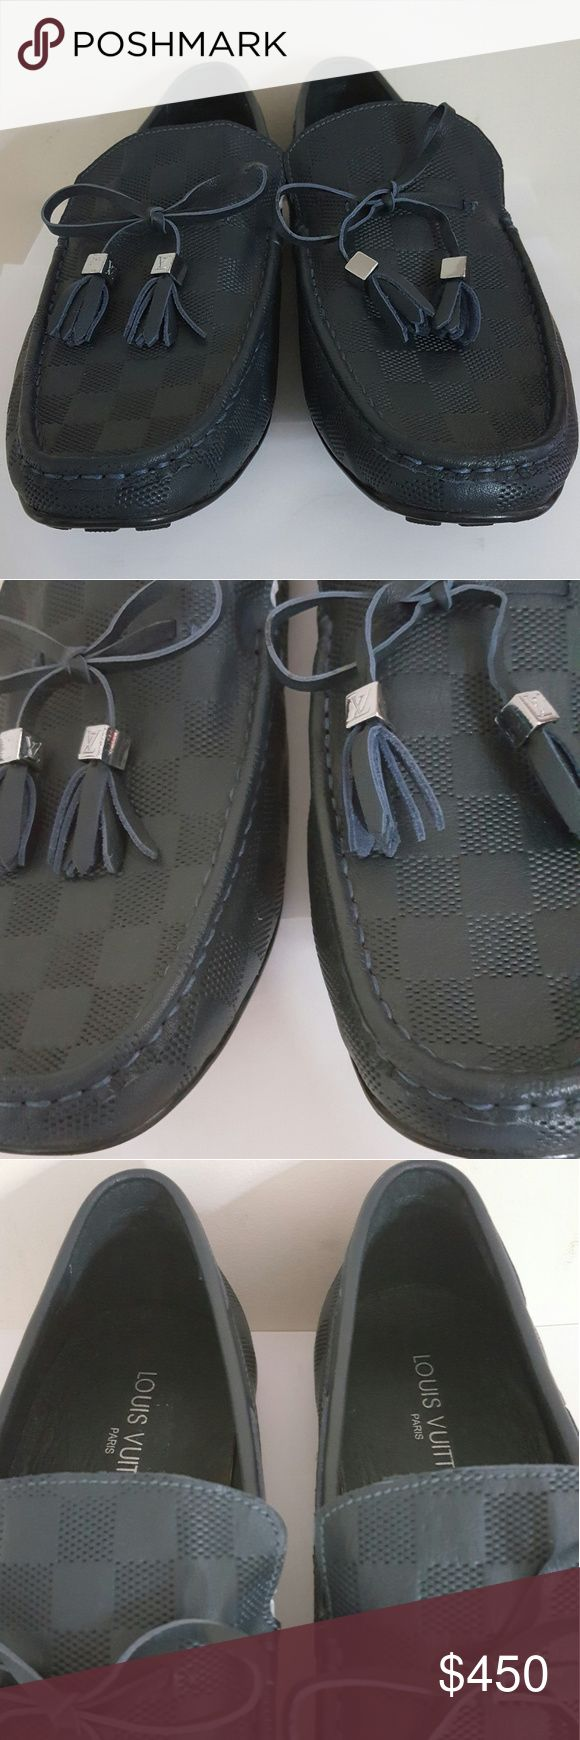 Louis Vuitton Men's Navy Damier Moccasins Louis Vuitton Men's Navy Damier Moccasins   LV stamped UK size 44  New in Box  MSRP $650  Navy Leather  Damier Pattern  Classic stitch   Non- slip soles  Leather insoles  Stamped serial no.  Made in Italy  Navy color  Comes with dust bag and box Louis Vuitton Shoes Loafers & Slip-Ons